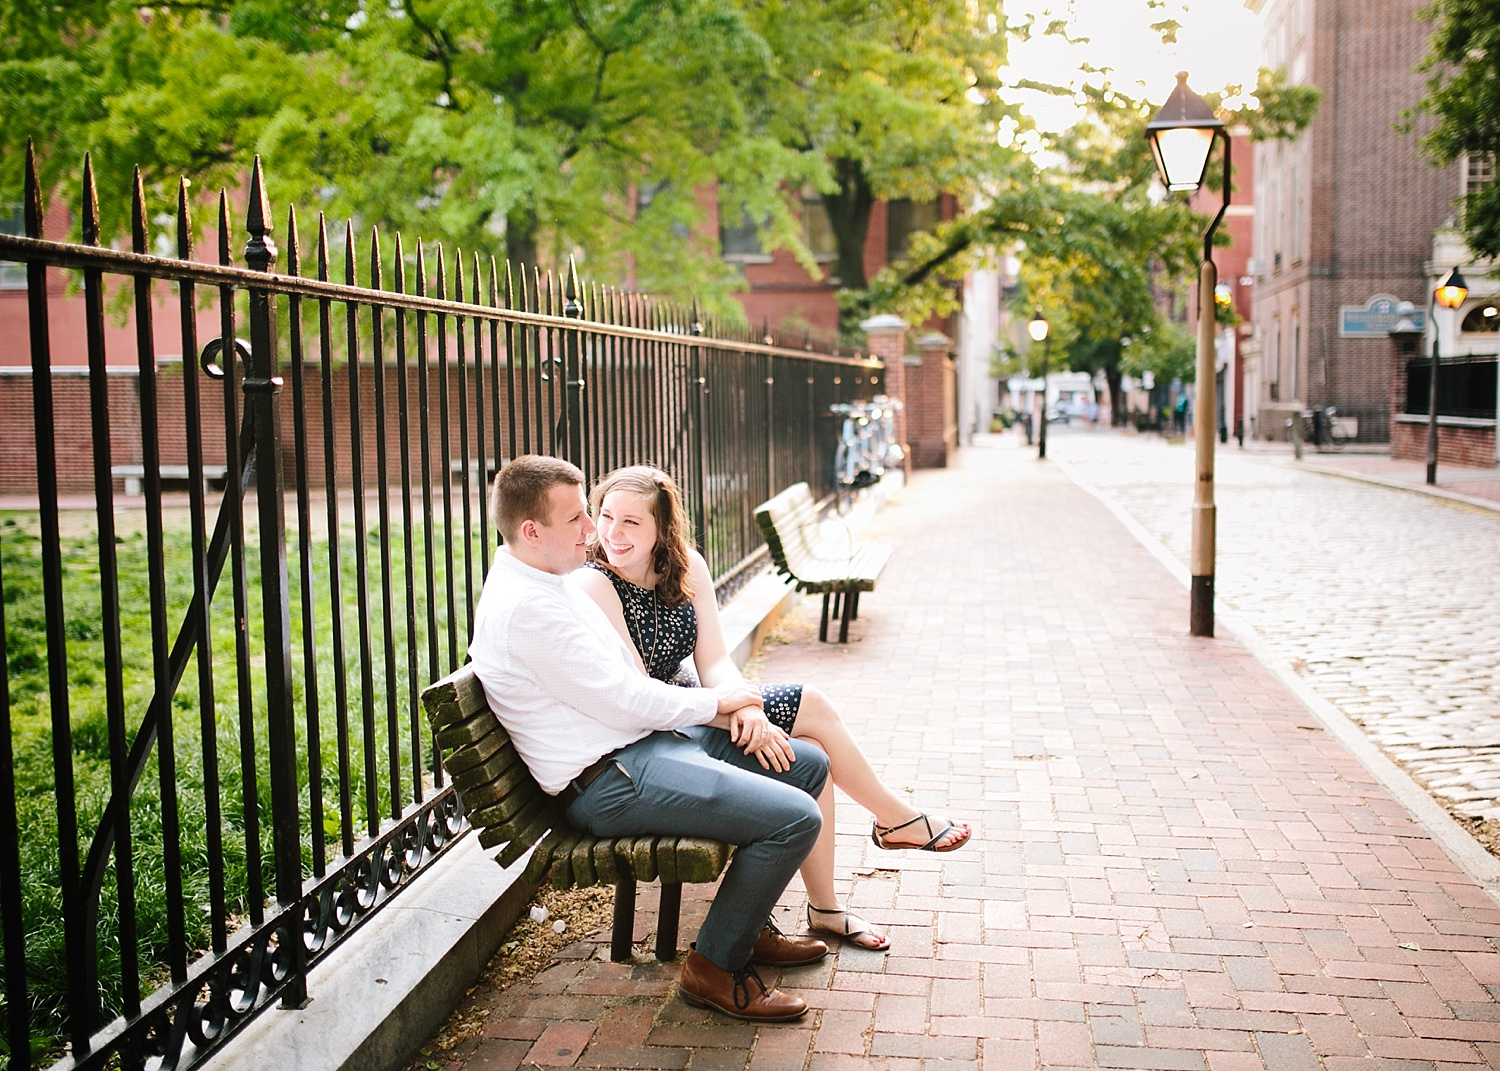 lizandbrandon_oldcity_philadelphia_elfrethsalley_engagement_session_image023.jpg